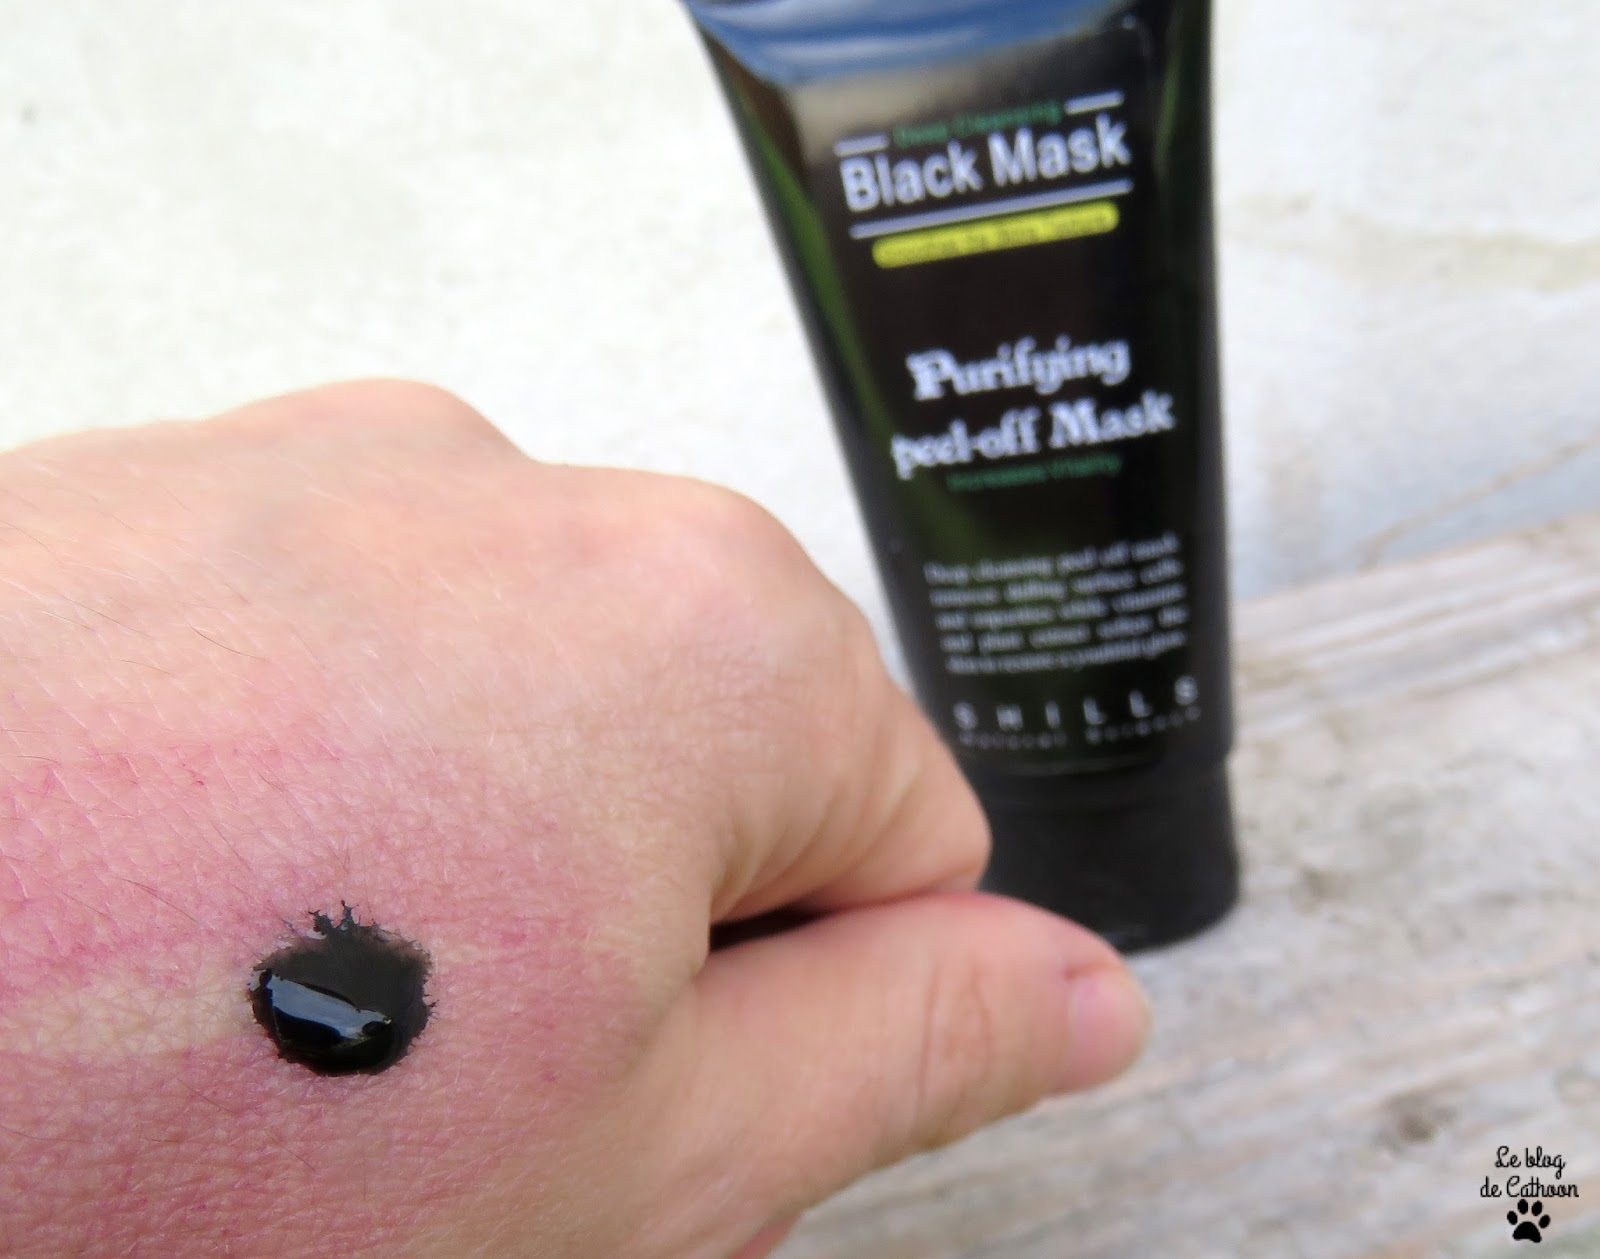 Black Mask Peel Off